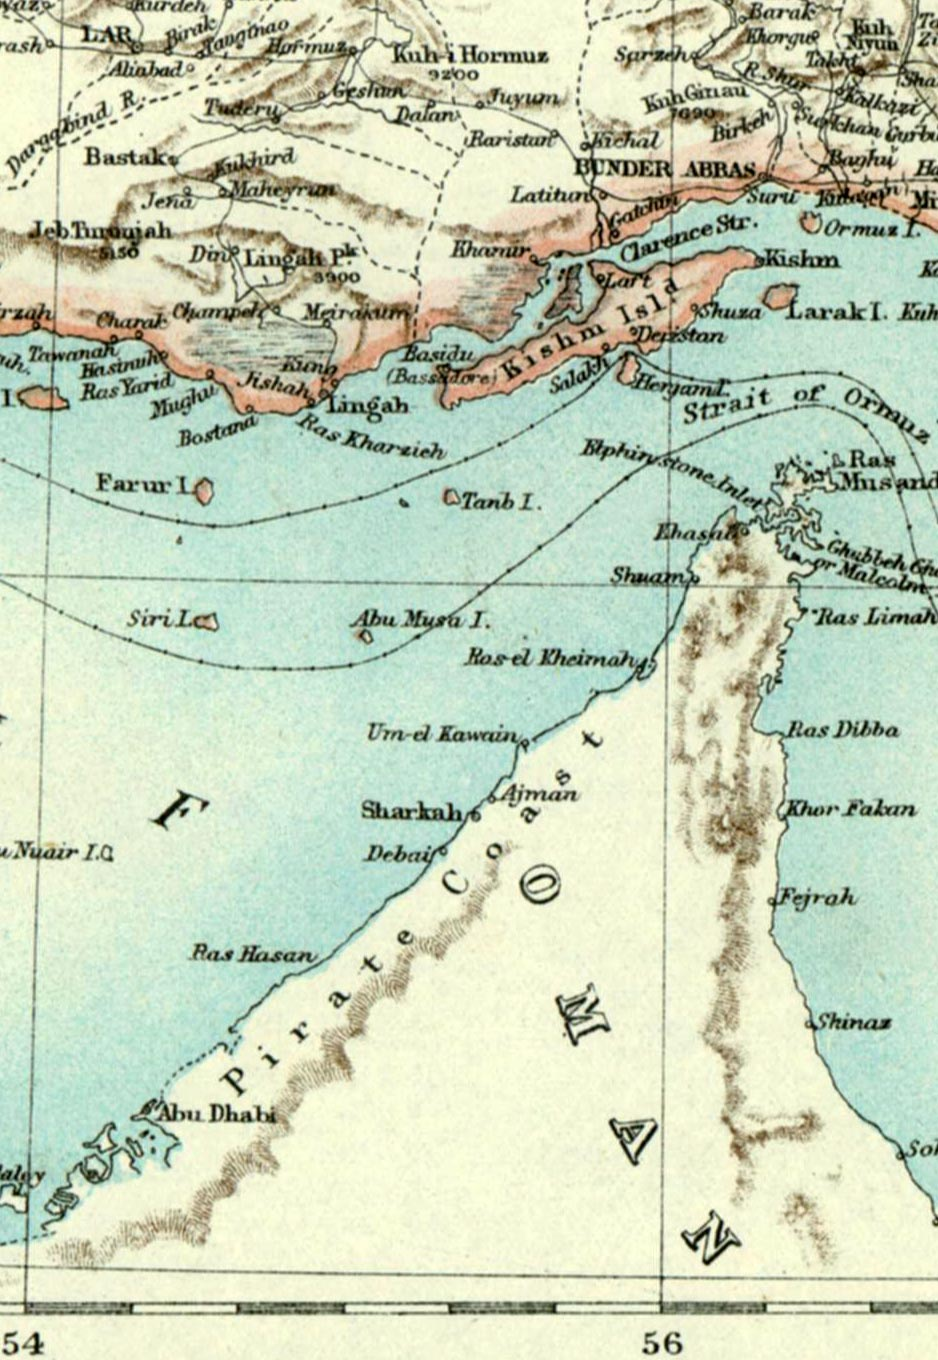 File:STRAIT OF HORMUZ.jpg - Wikipedia, the free encyclopedia